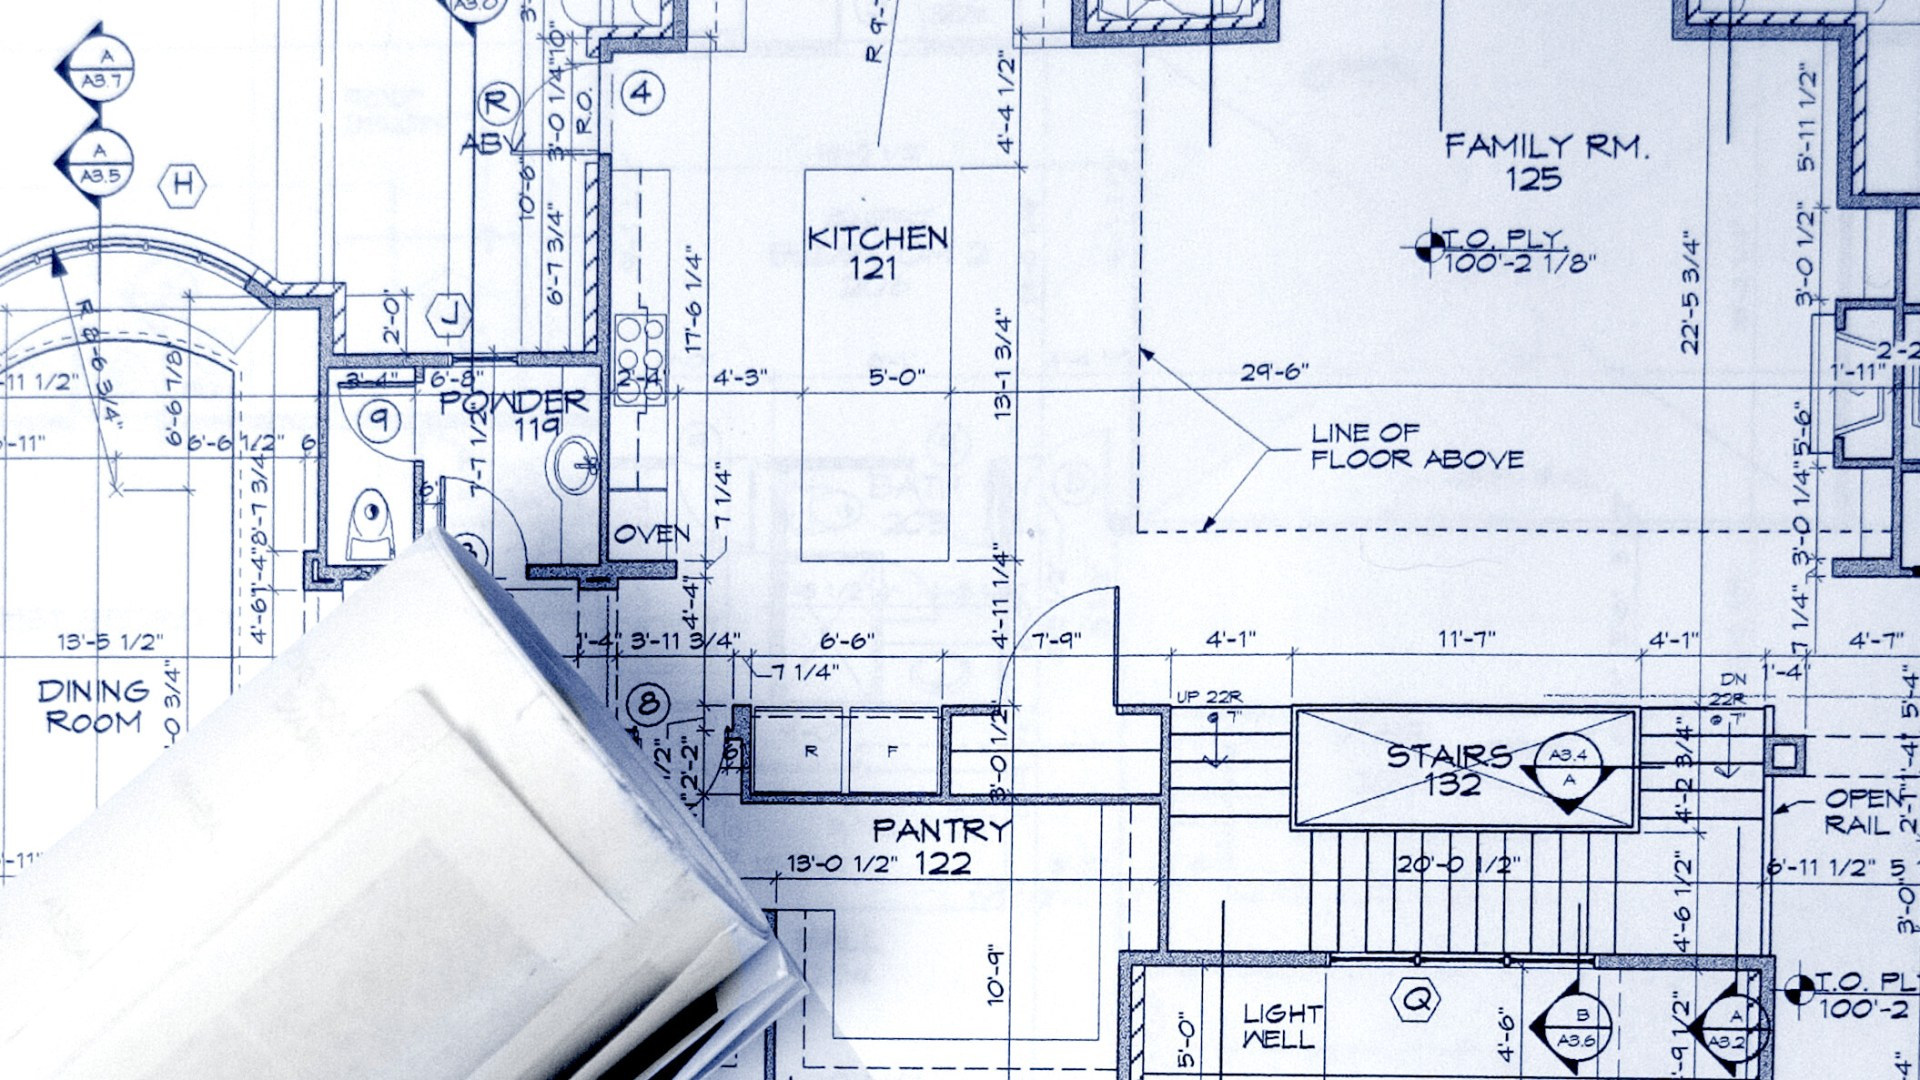 Contact Myles Nelson McKenzie Design in Bluffton South Carolina for New Home Design